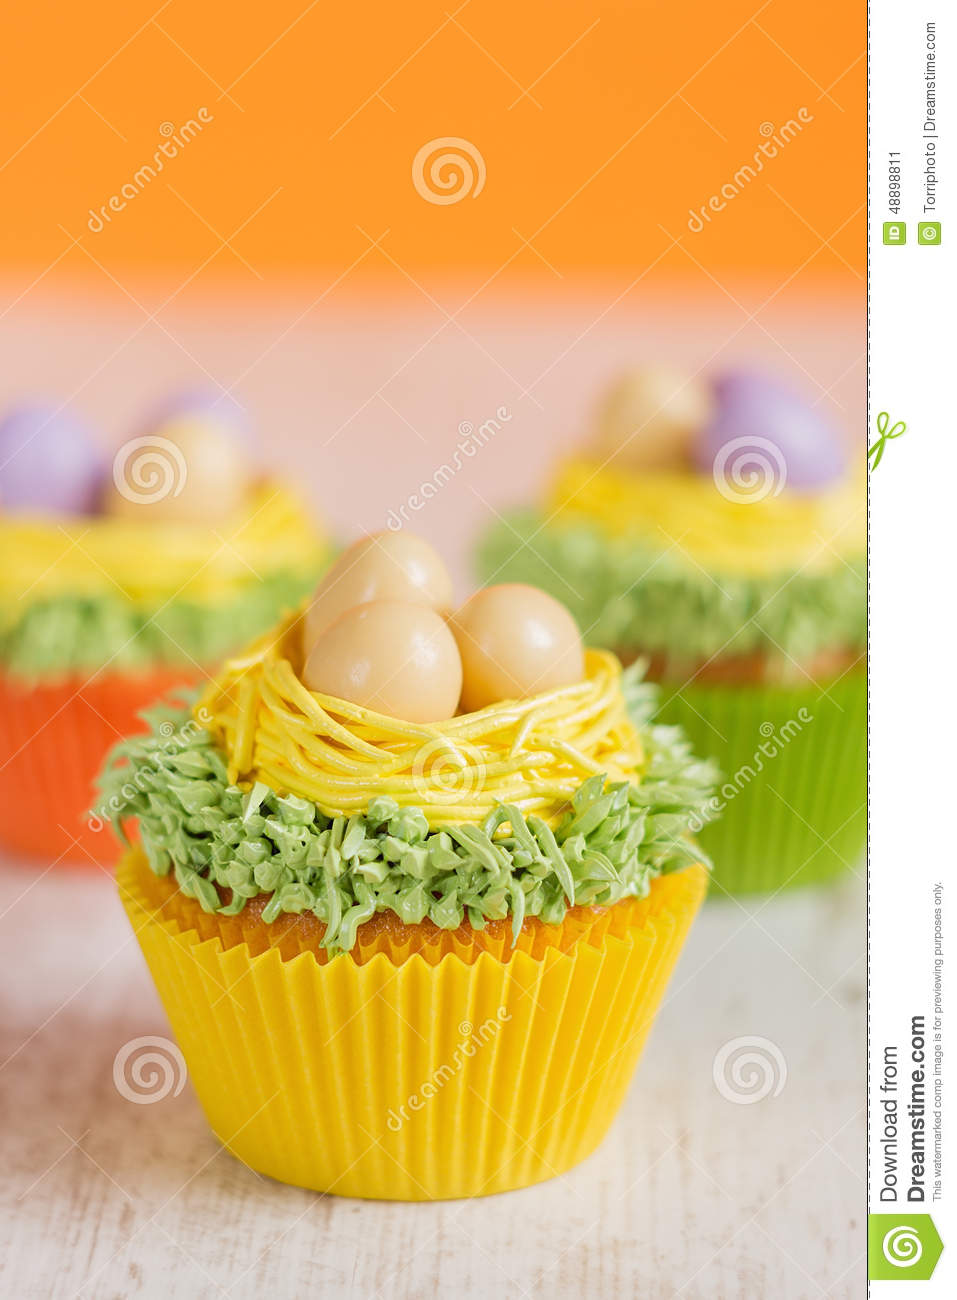 Red Icing Easter Egg Cake